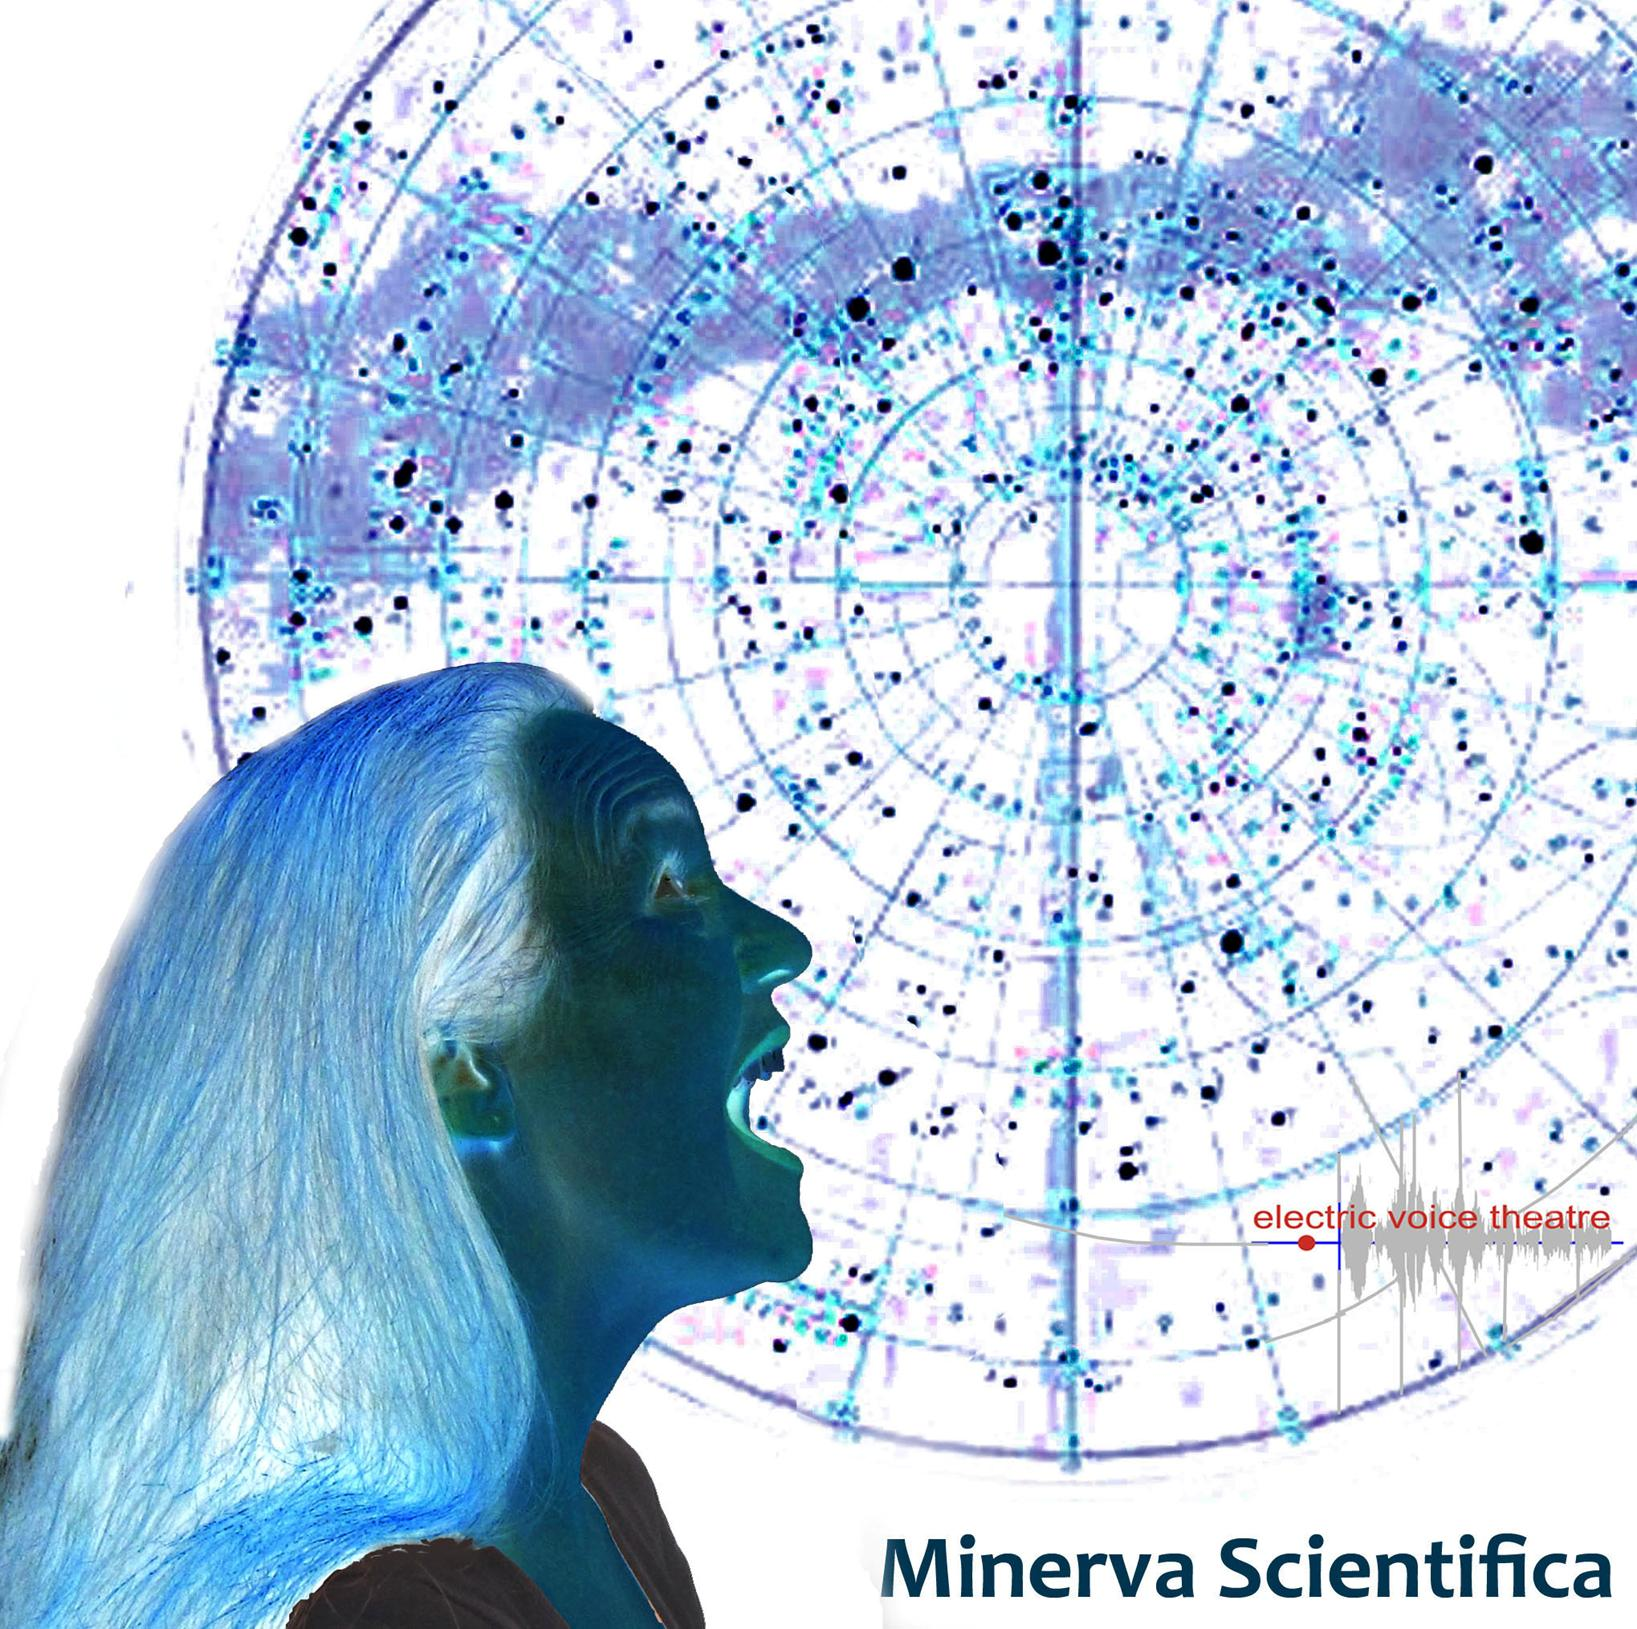 Minerva Scientifica